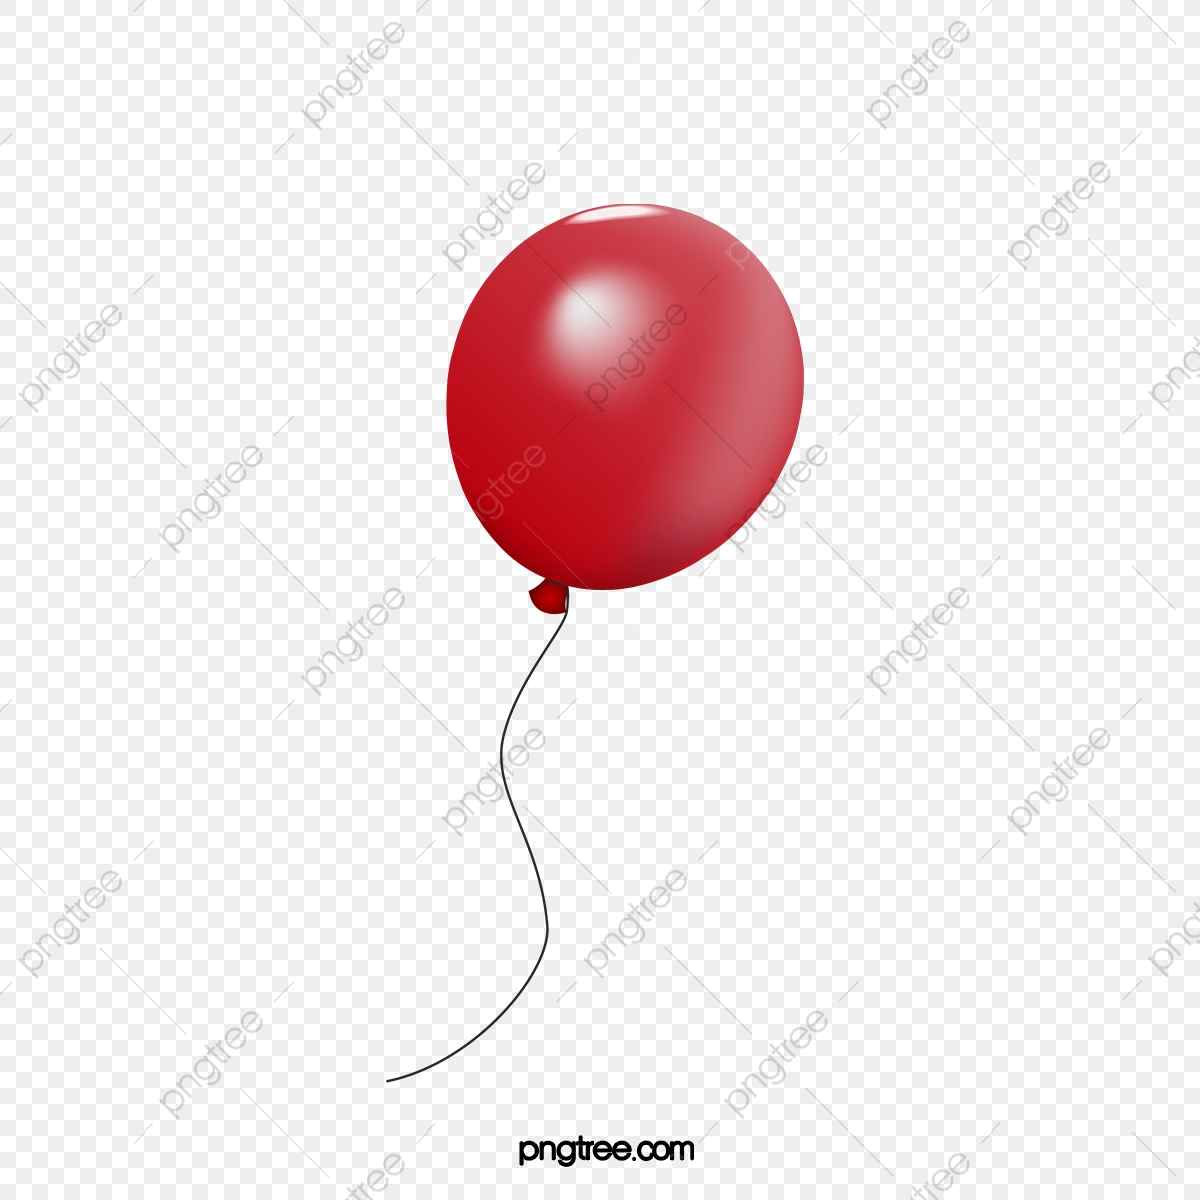 hight resolution of commercial use resource upgrade to premium plan and get license authorization upgradenow red balloon balloon clipart